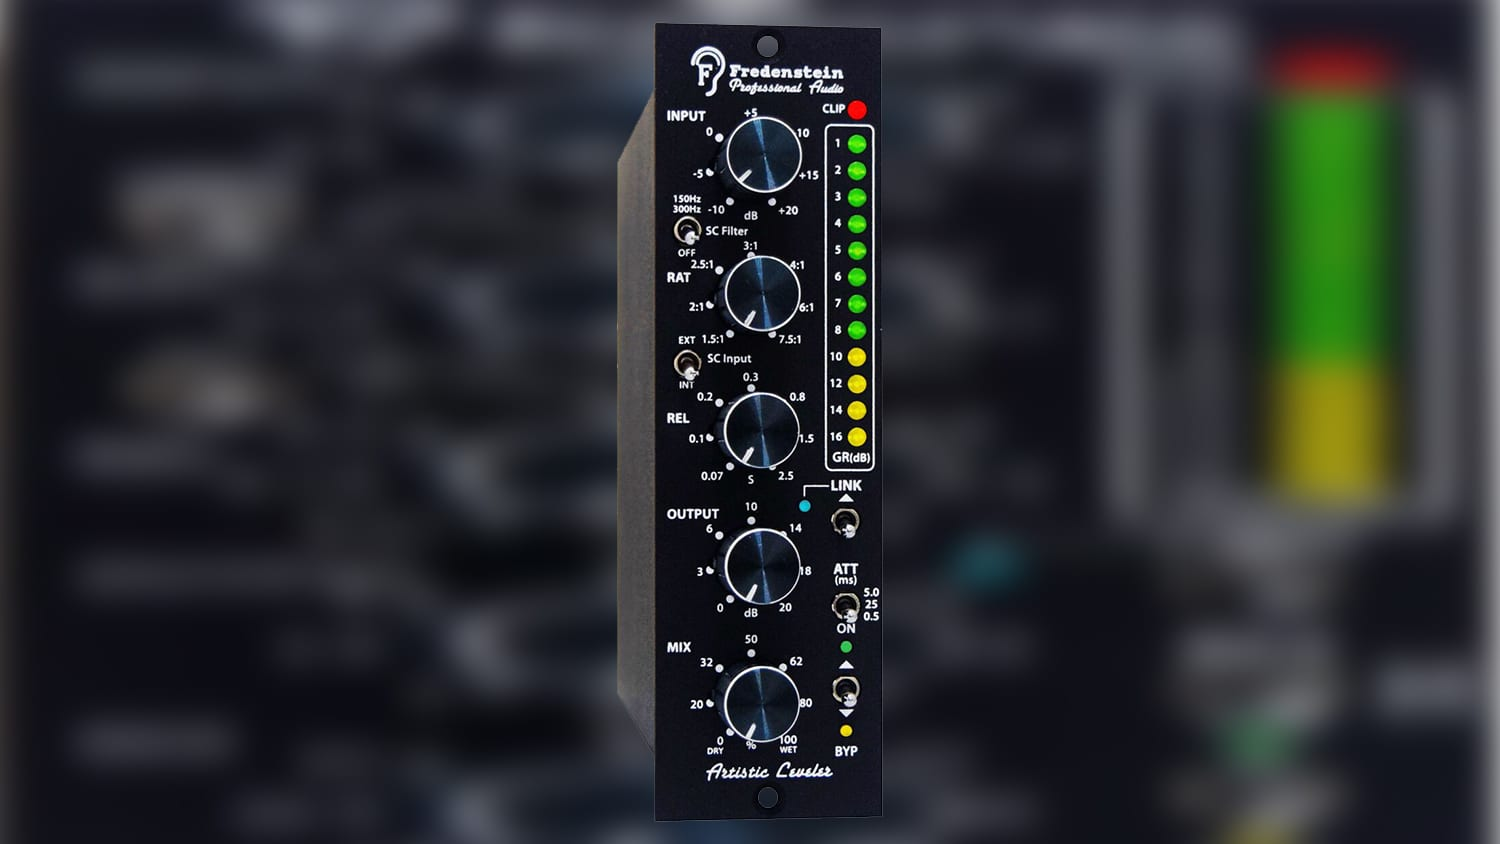 fredenstein audio artistic leveler 500 series compressor